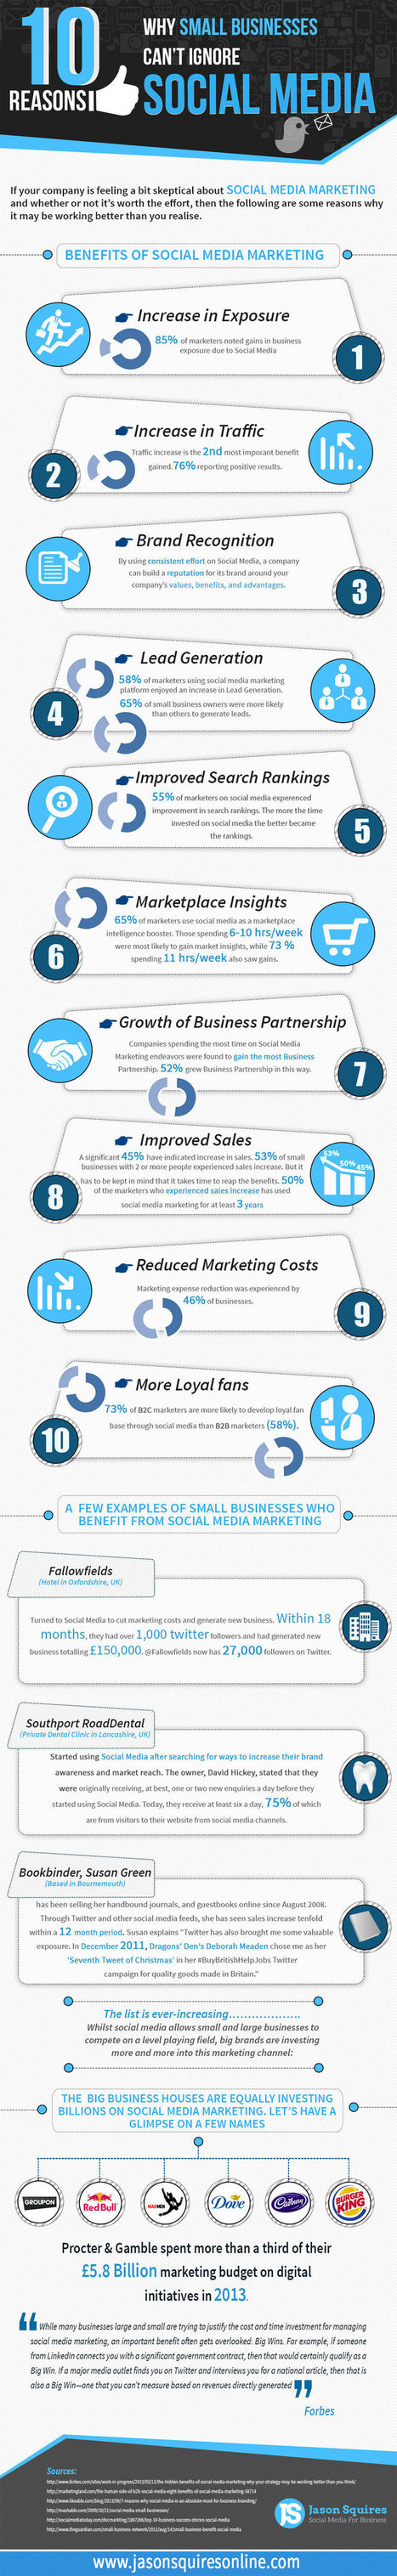 10 reasons why small business can't ignore social media an infographic   Business and Marketing   Scoop.it